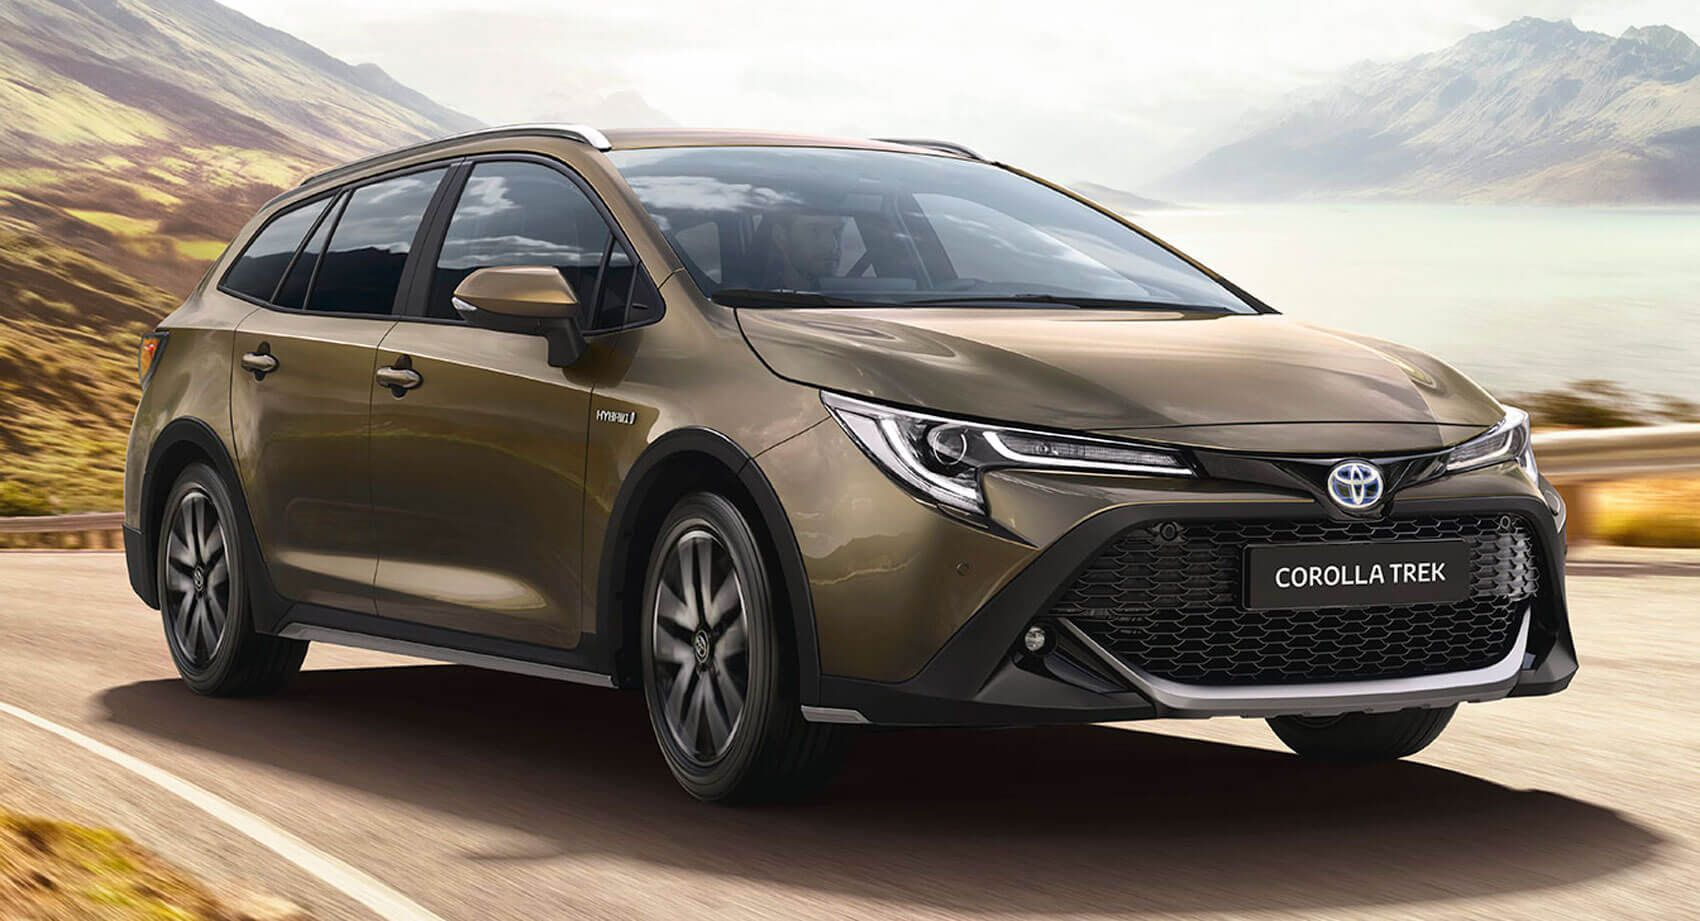 2020 Toyota Corolla Trek Unveiled As Ford Focus Active Rival Hybrids Newcars Toyota Toyotacorolla Cars Carsofinstagram Car Toyota Corolla Cars Uk Toyota